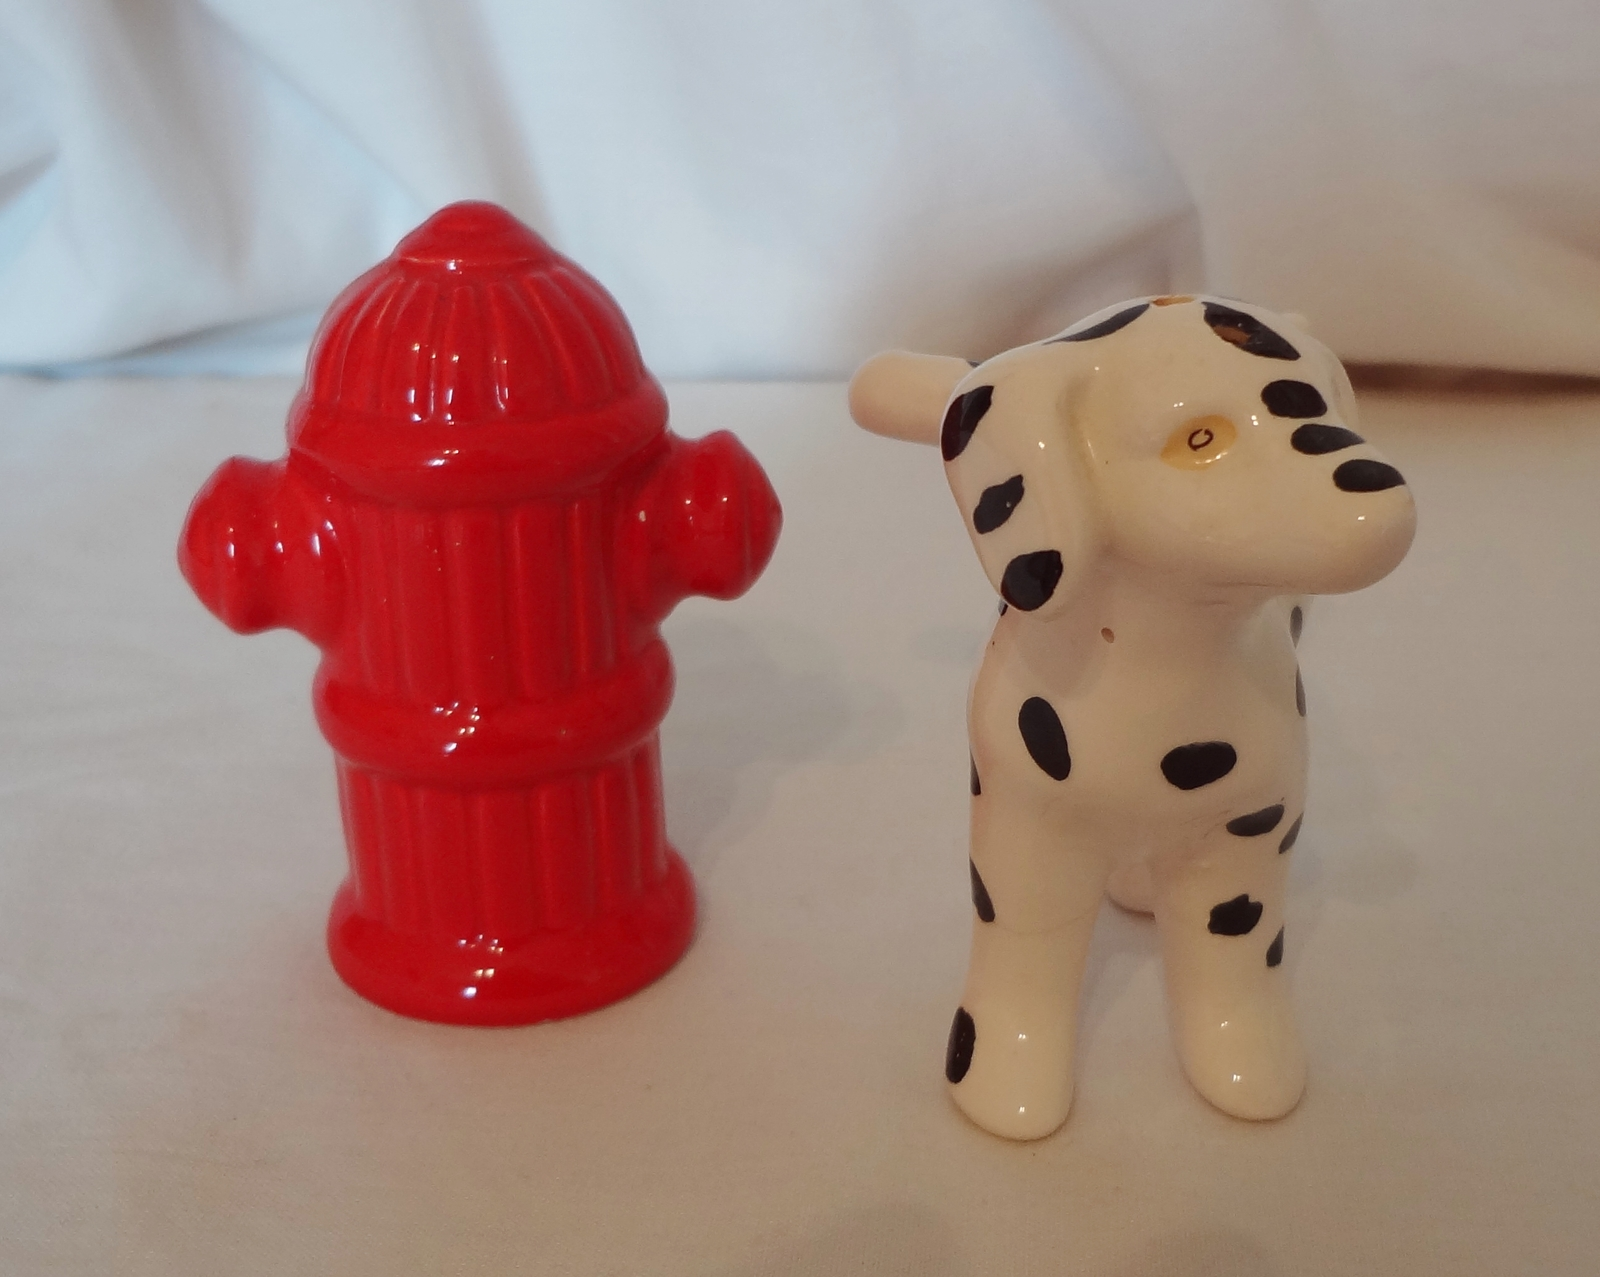 Dalmatian Dog Fire Hydrant Salt And Pepper Shakers Novelty